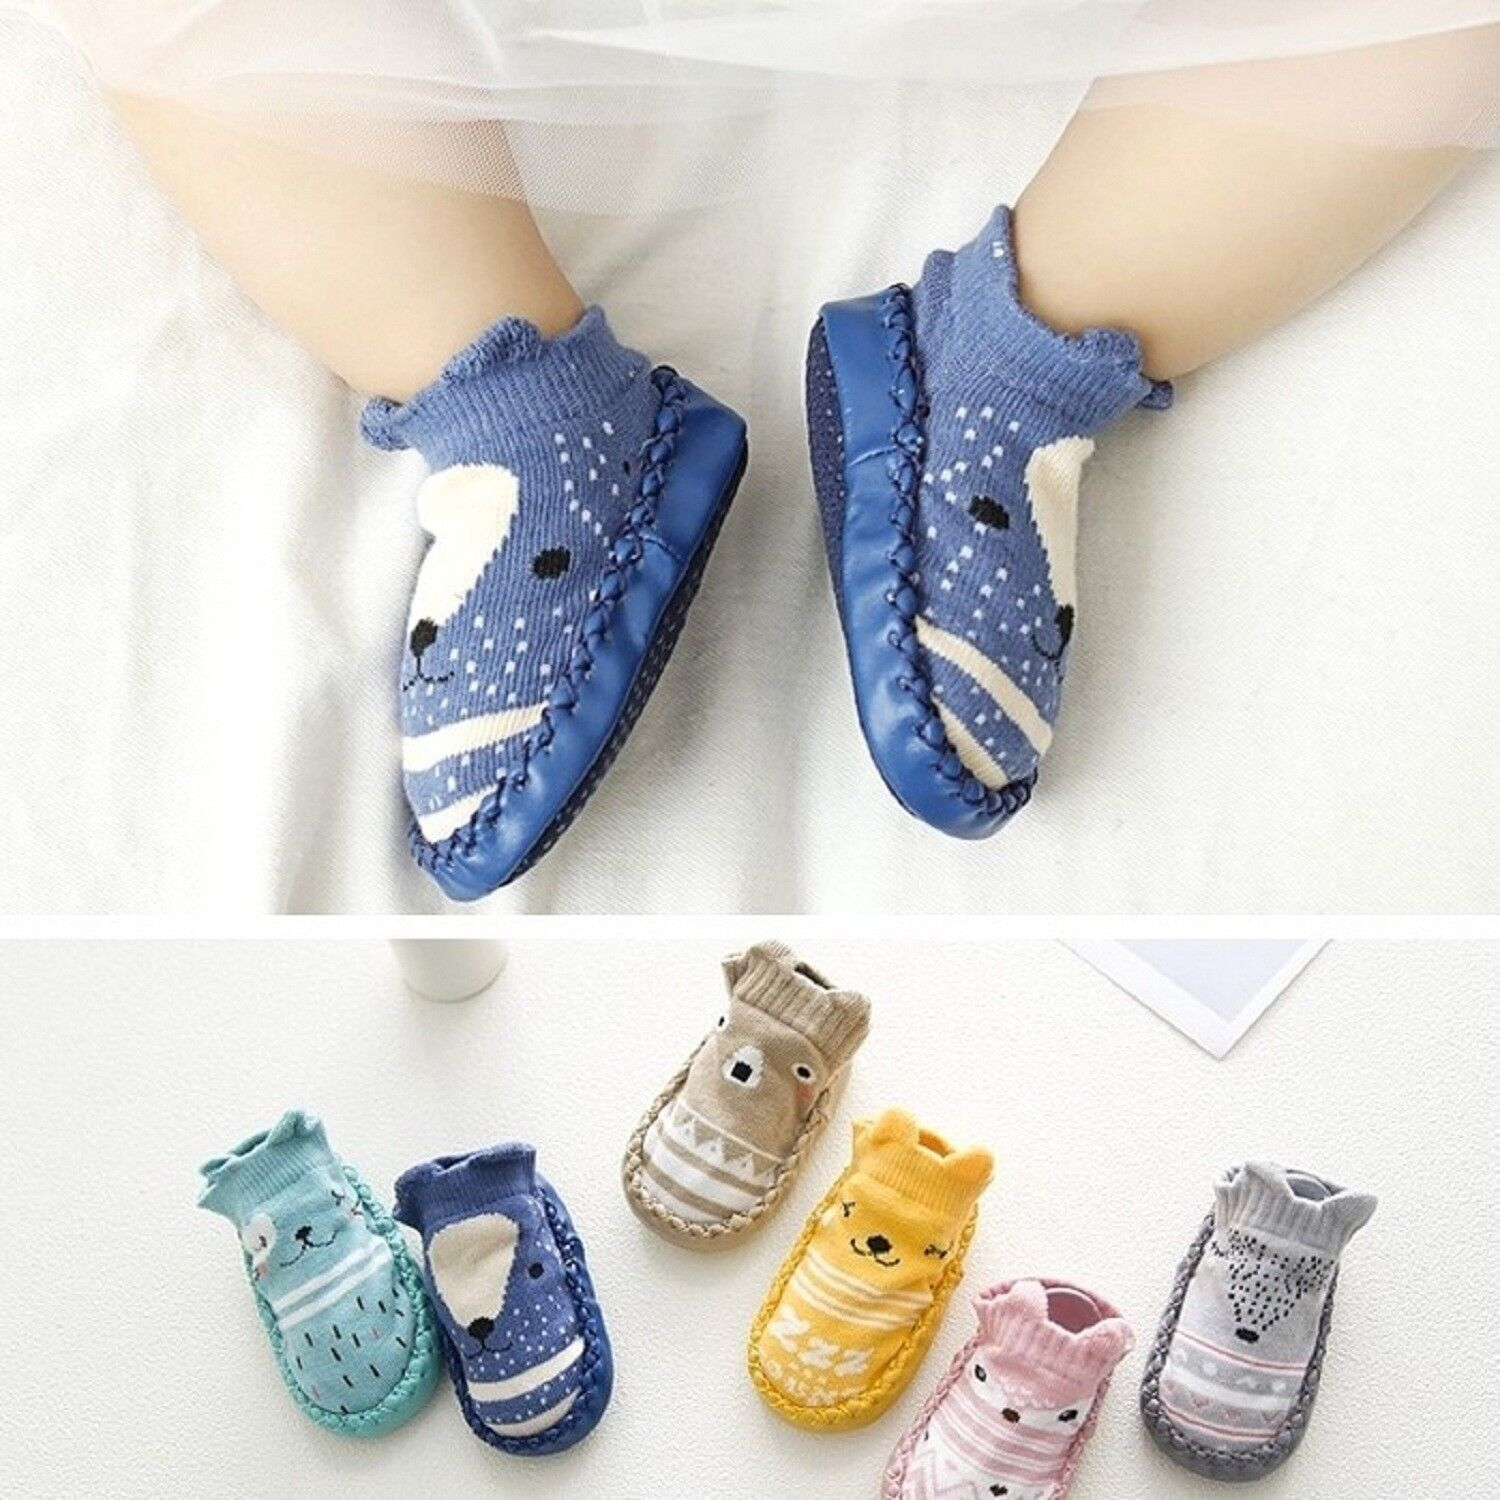 Cute Pink Dog Baby Boy Shoes Booties Boots Slippers Clothes